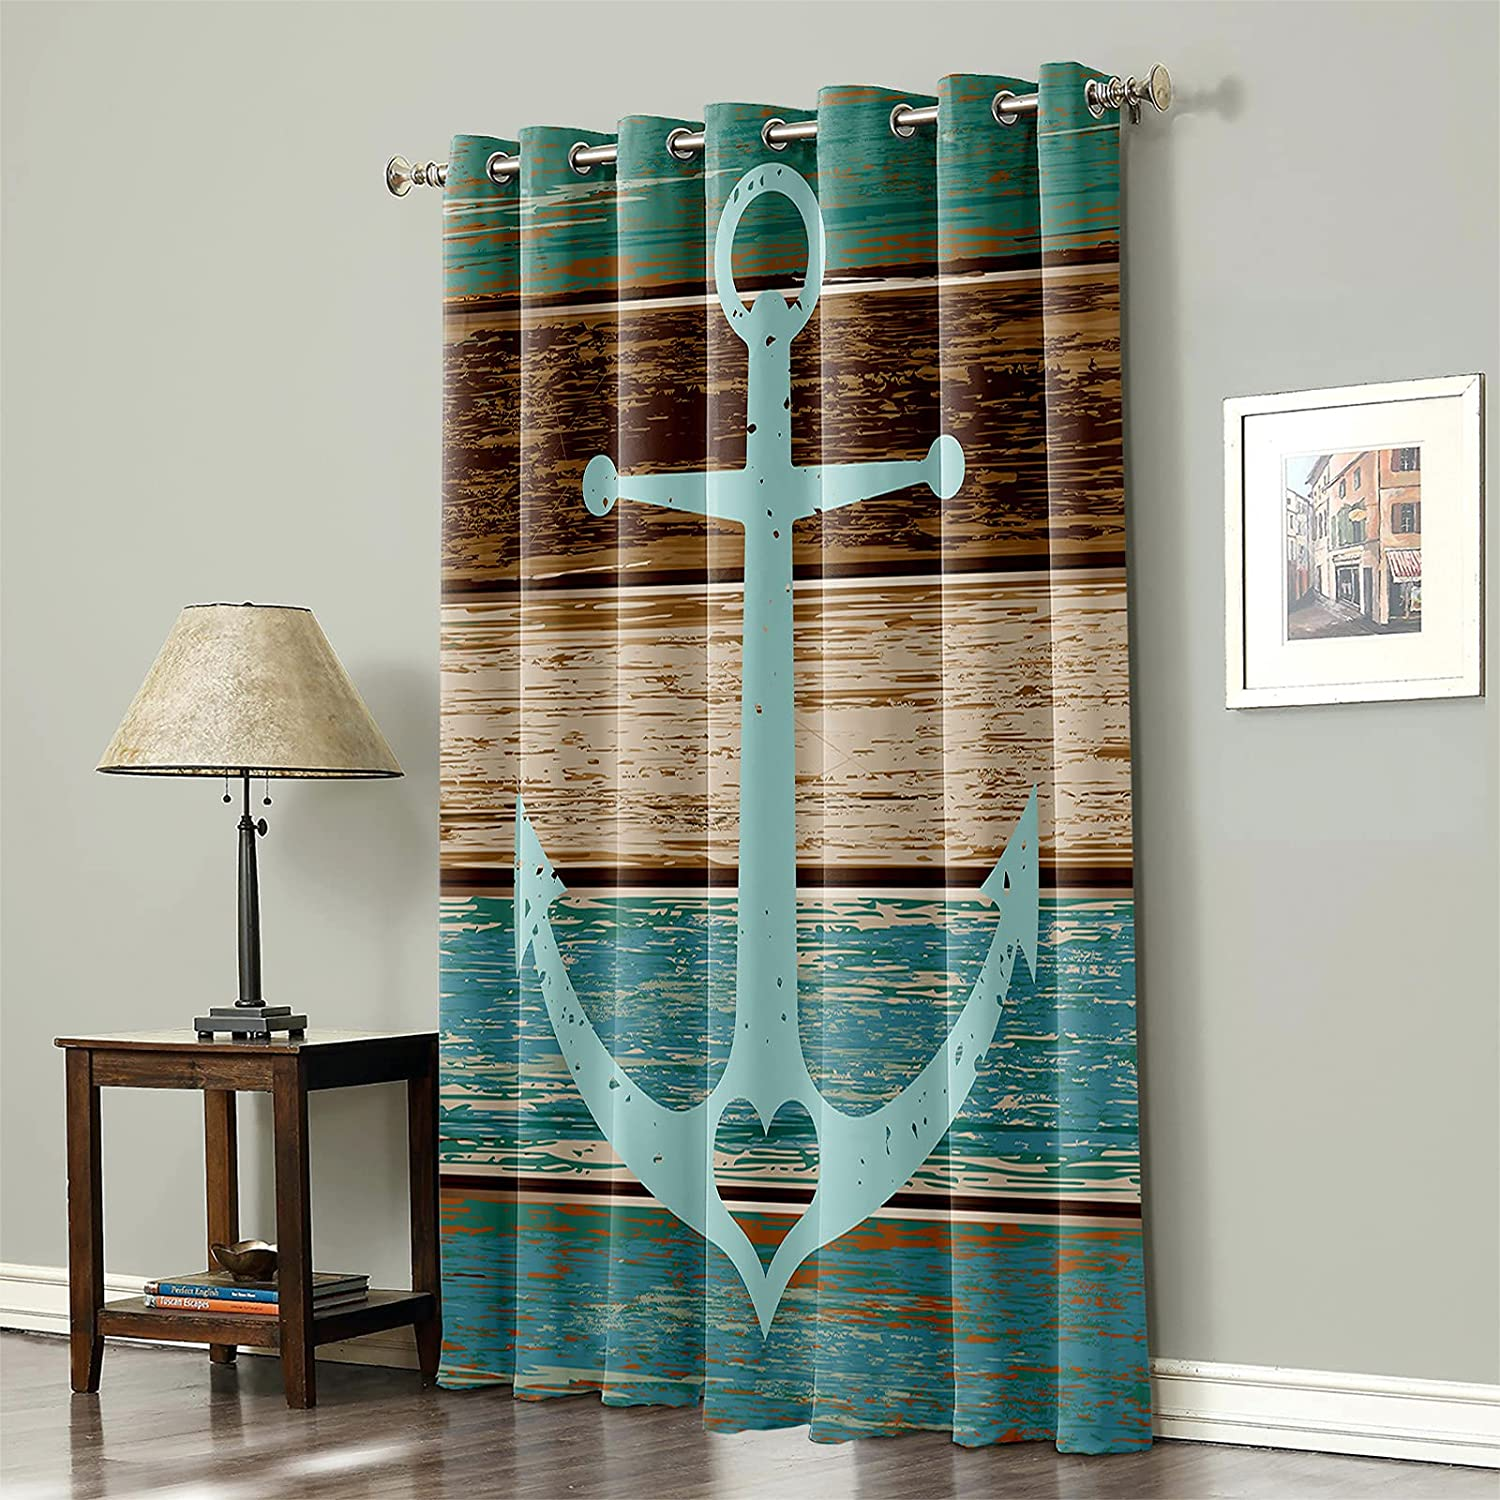 Blackout Be super welcome Curtain for Bedroom A surprise price is realized Ocean Anchor Theme Marine Turqu on